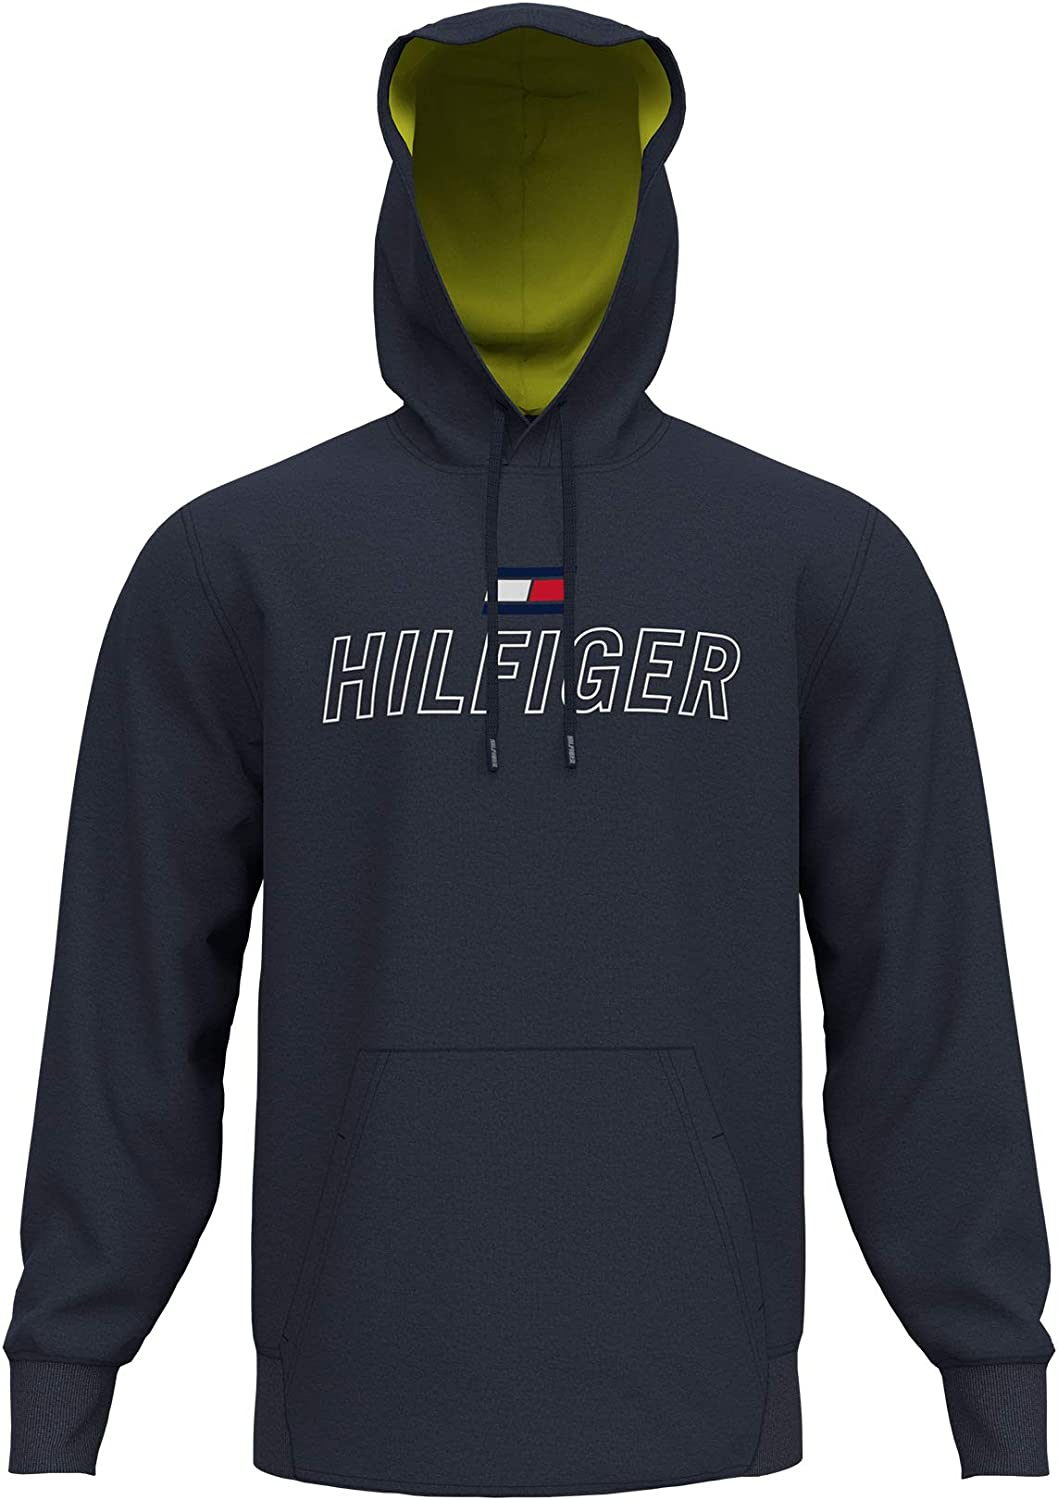 All stores are sold Tommy Hilfiger Men's Sport National uniform free shipping Hoodie Sweatshirt